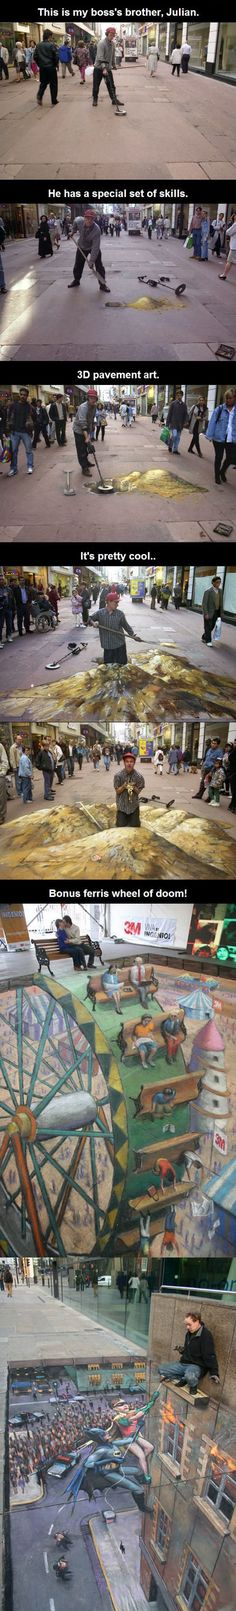 Street Art Gold Digger (Julian Beever) is part of Pavement art - More memes, funny videos and pics on Cool Pictures, Funny Pictures, Funny Pics, Funny Images, Random Pictures, Funny Art, Sports Pictures, Pavement Art, Sidewalk Art